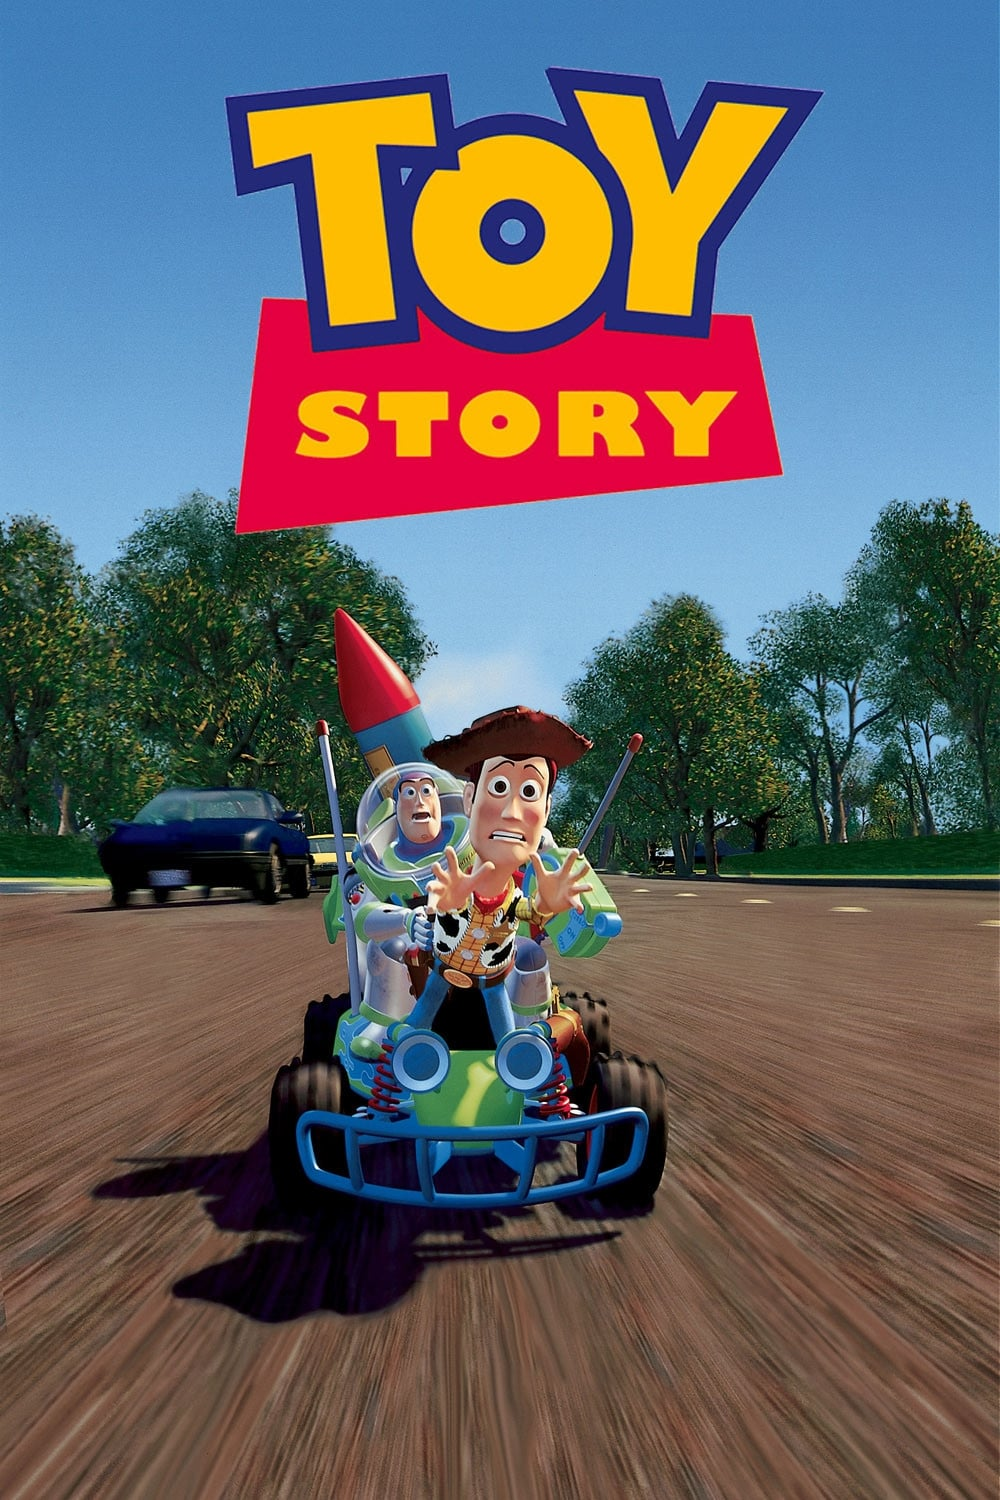 Toy Story Cracked Magazine: Toy Story (1995) • Movies.film-cine.com